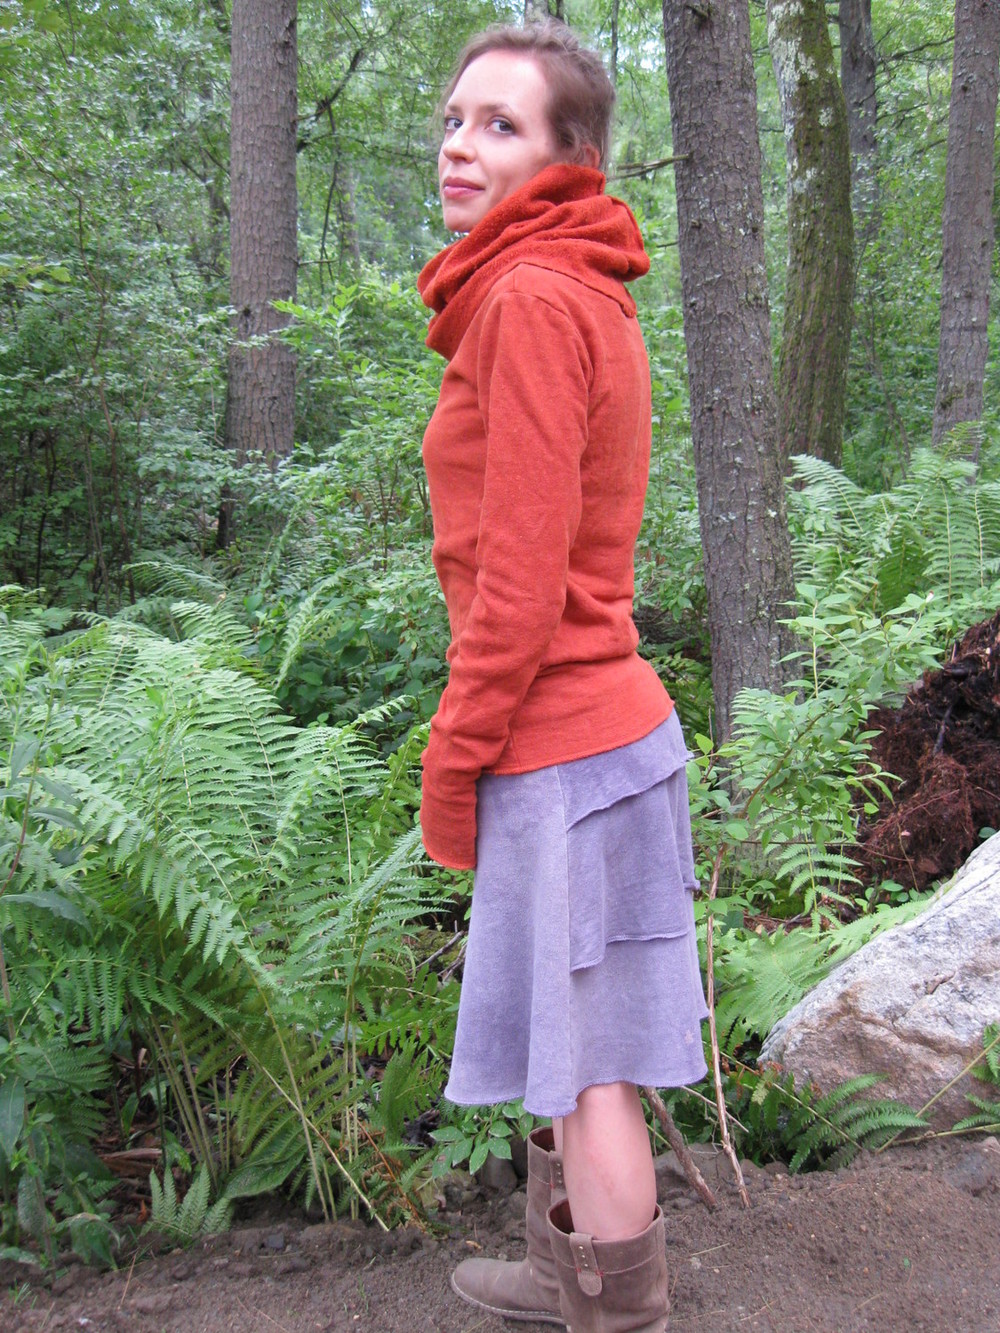 Cozy Pokara shirt and Ruffle Butt skirt in fleece! I love them! - Erin